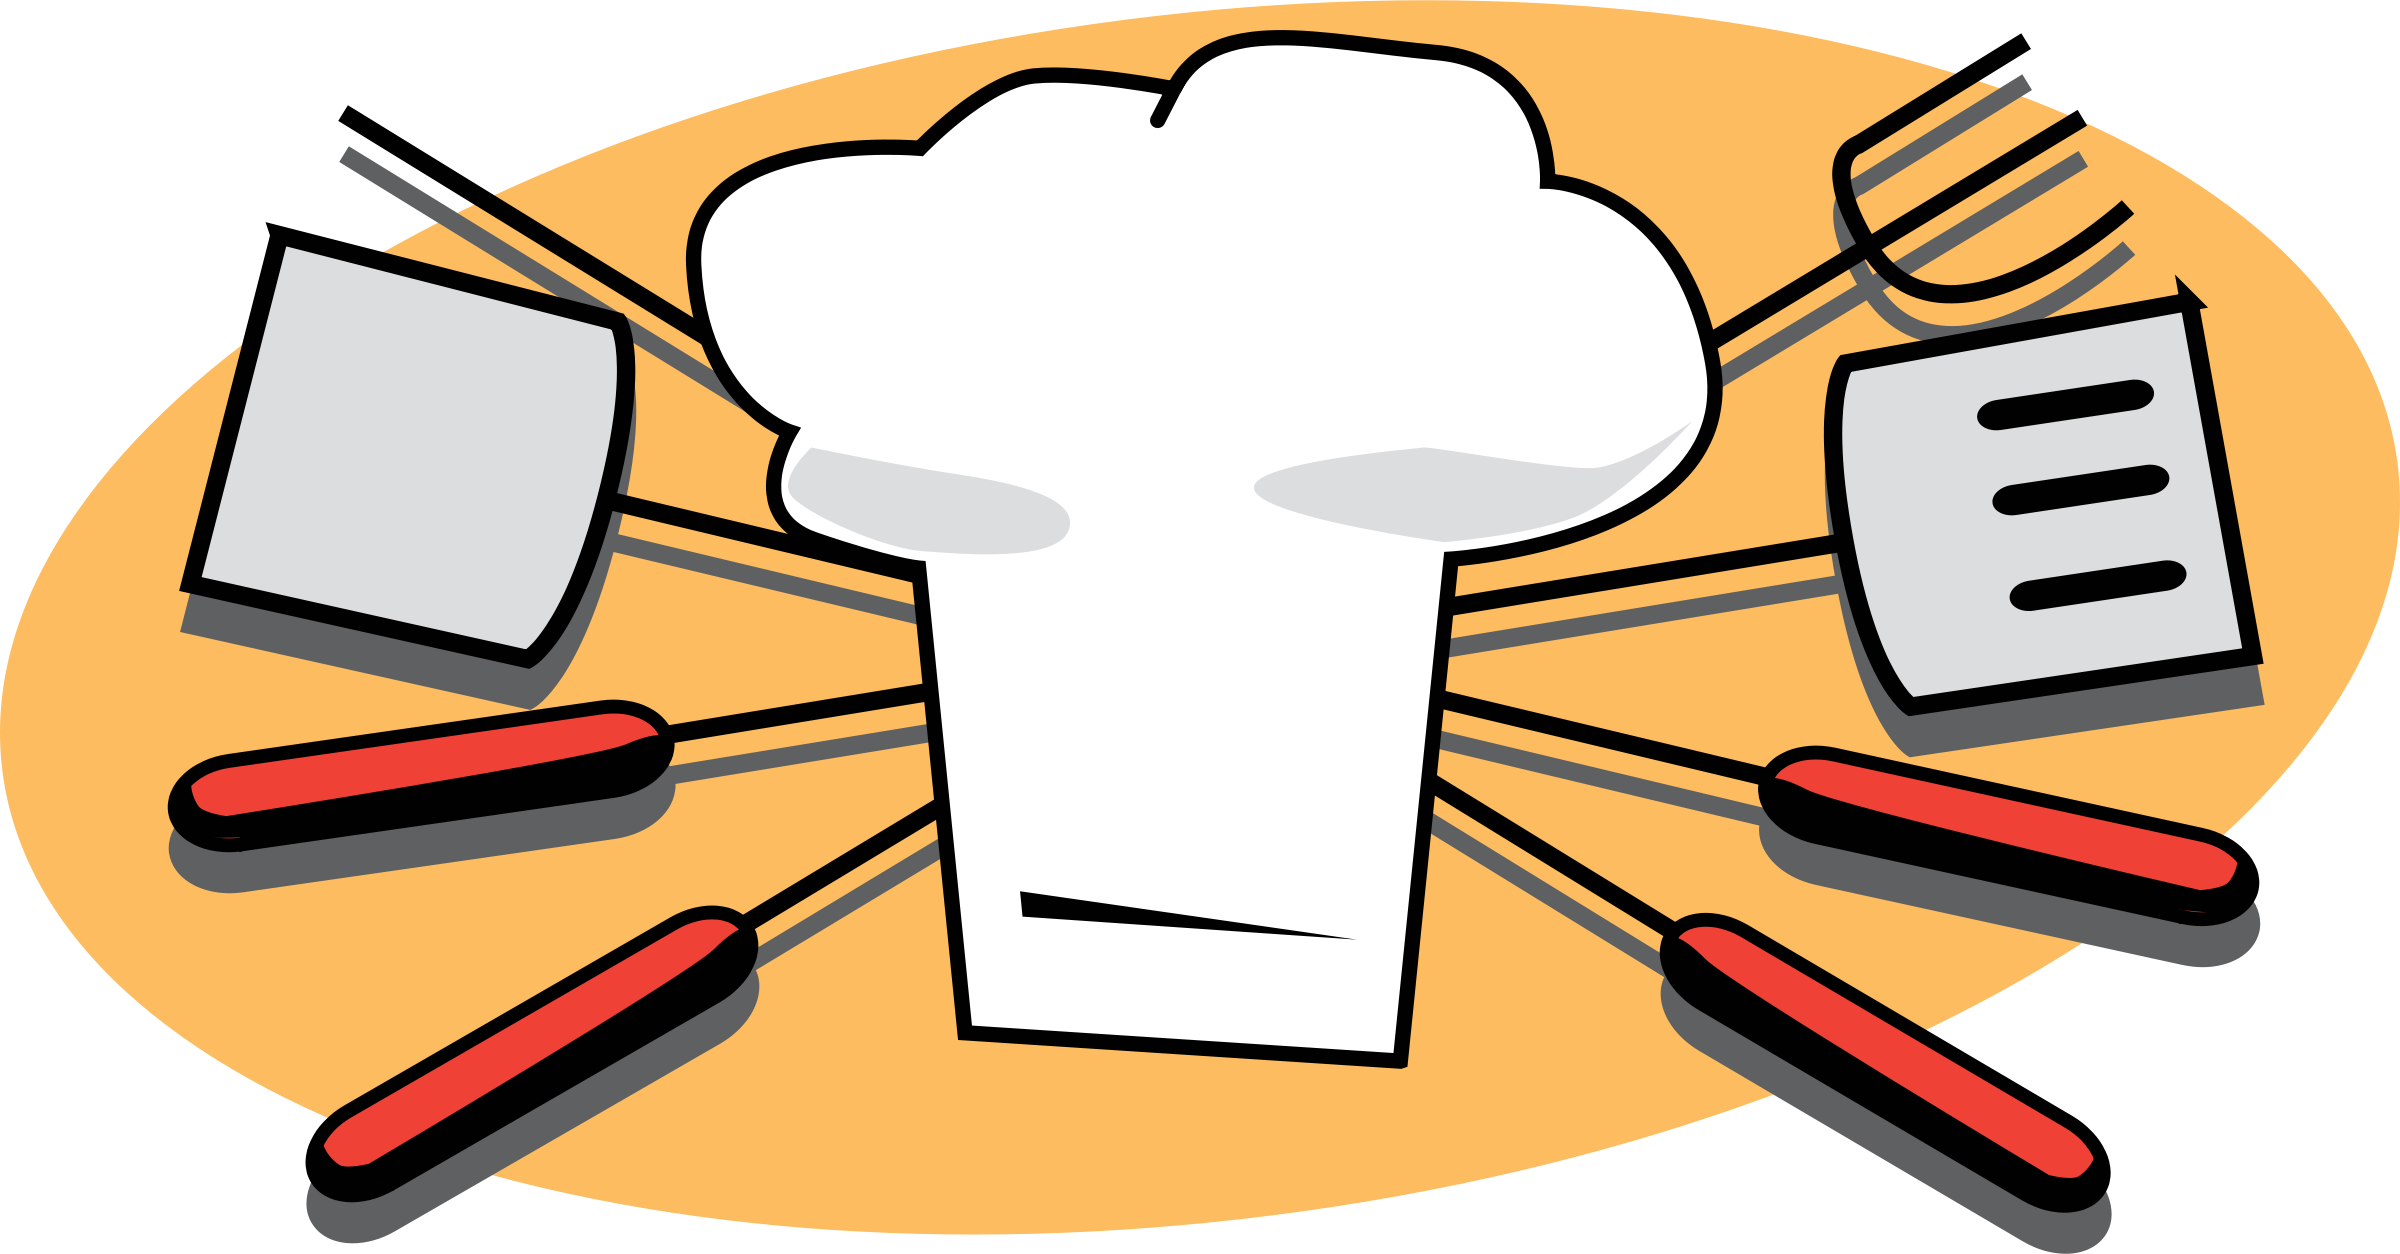 Clipart restaurant food preparation. Free bbq fire cliparts